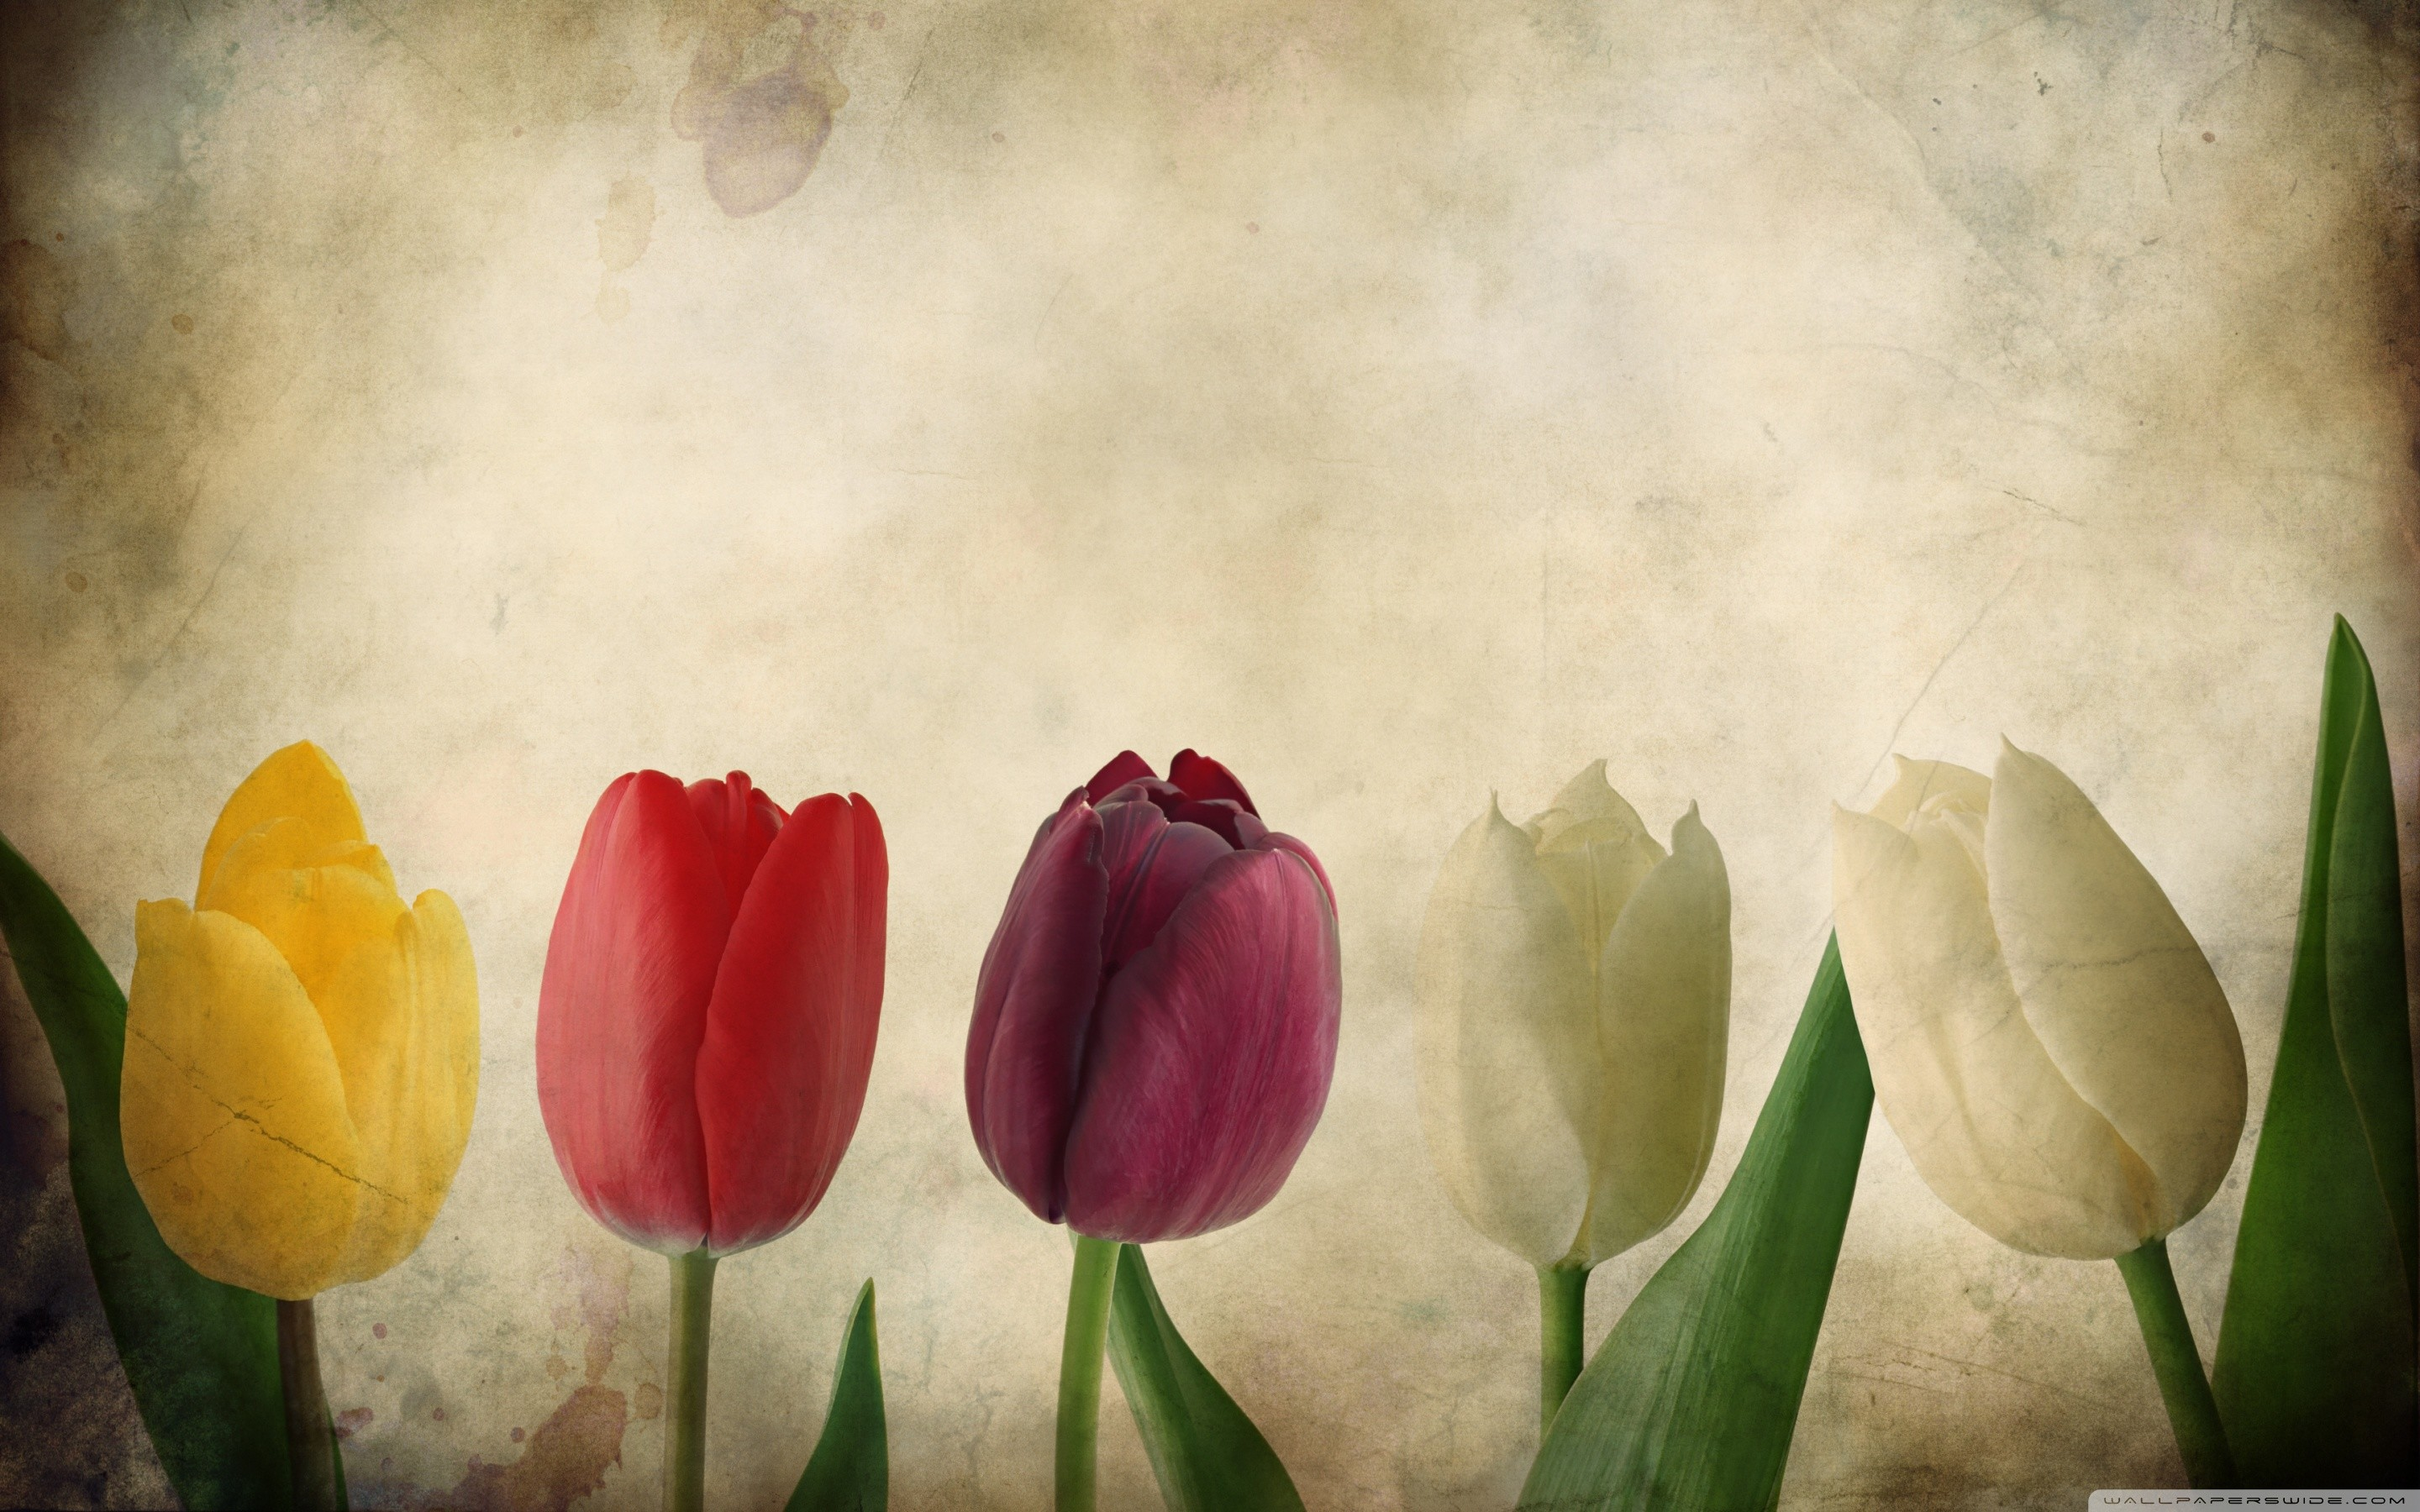 2880x1800 tulip-flower | Tulip | Pinterest | Tulips flowers, Flower images wallpapers  and Flower images